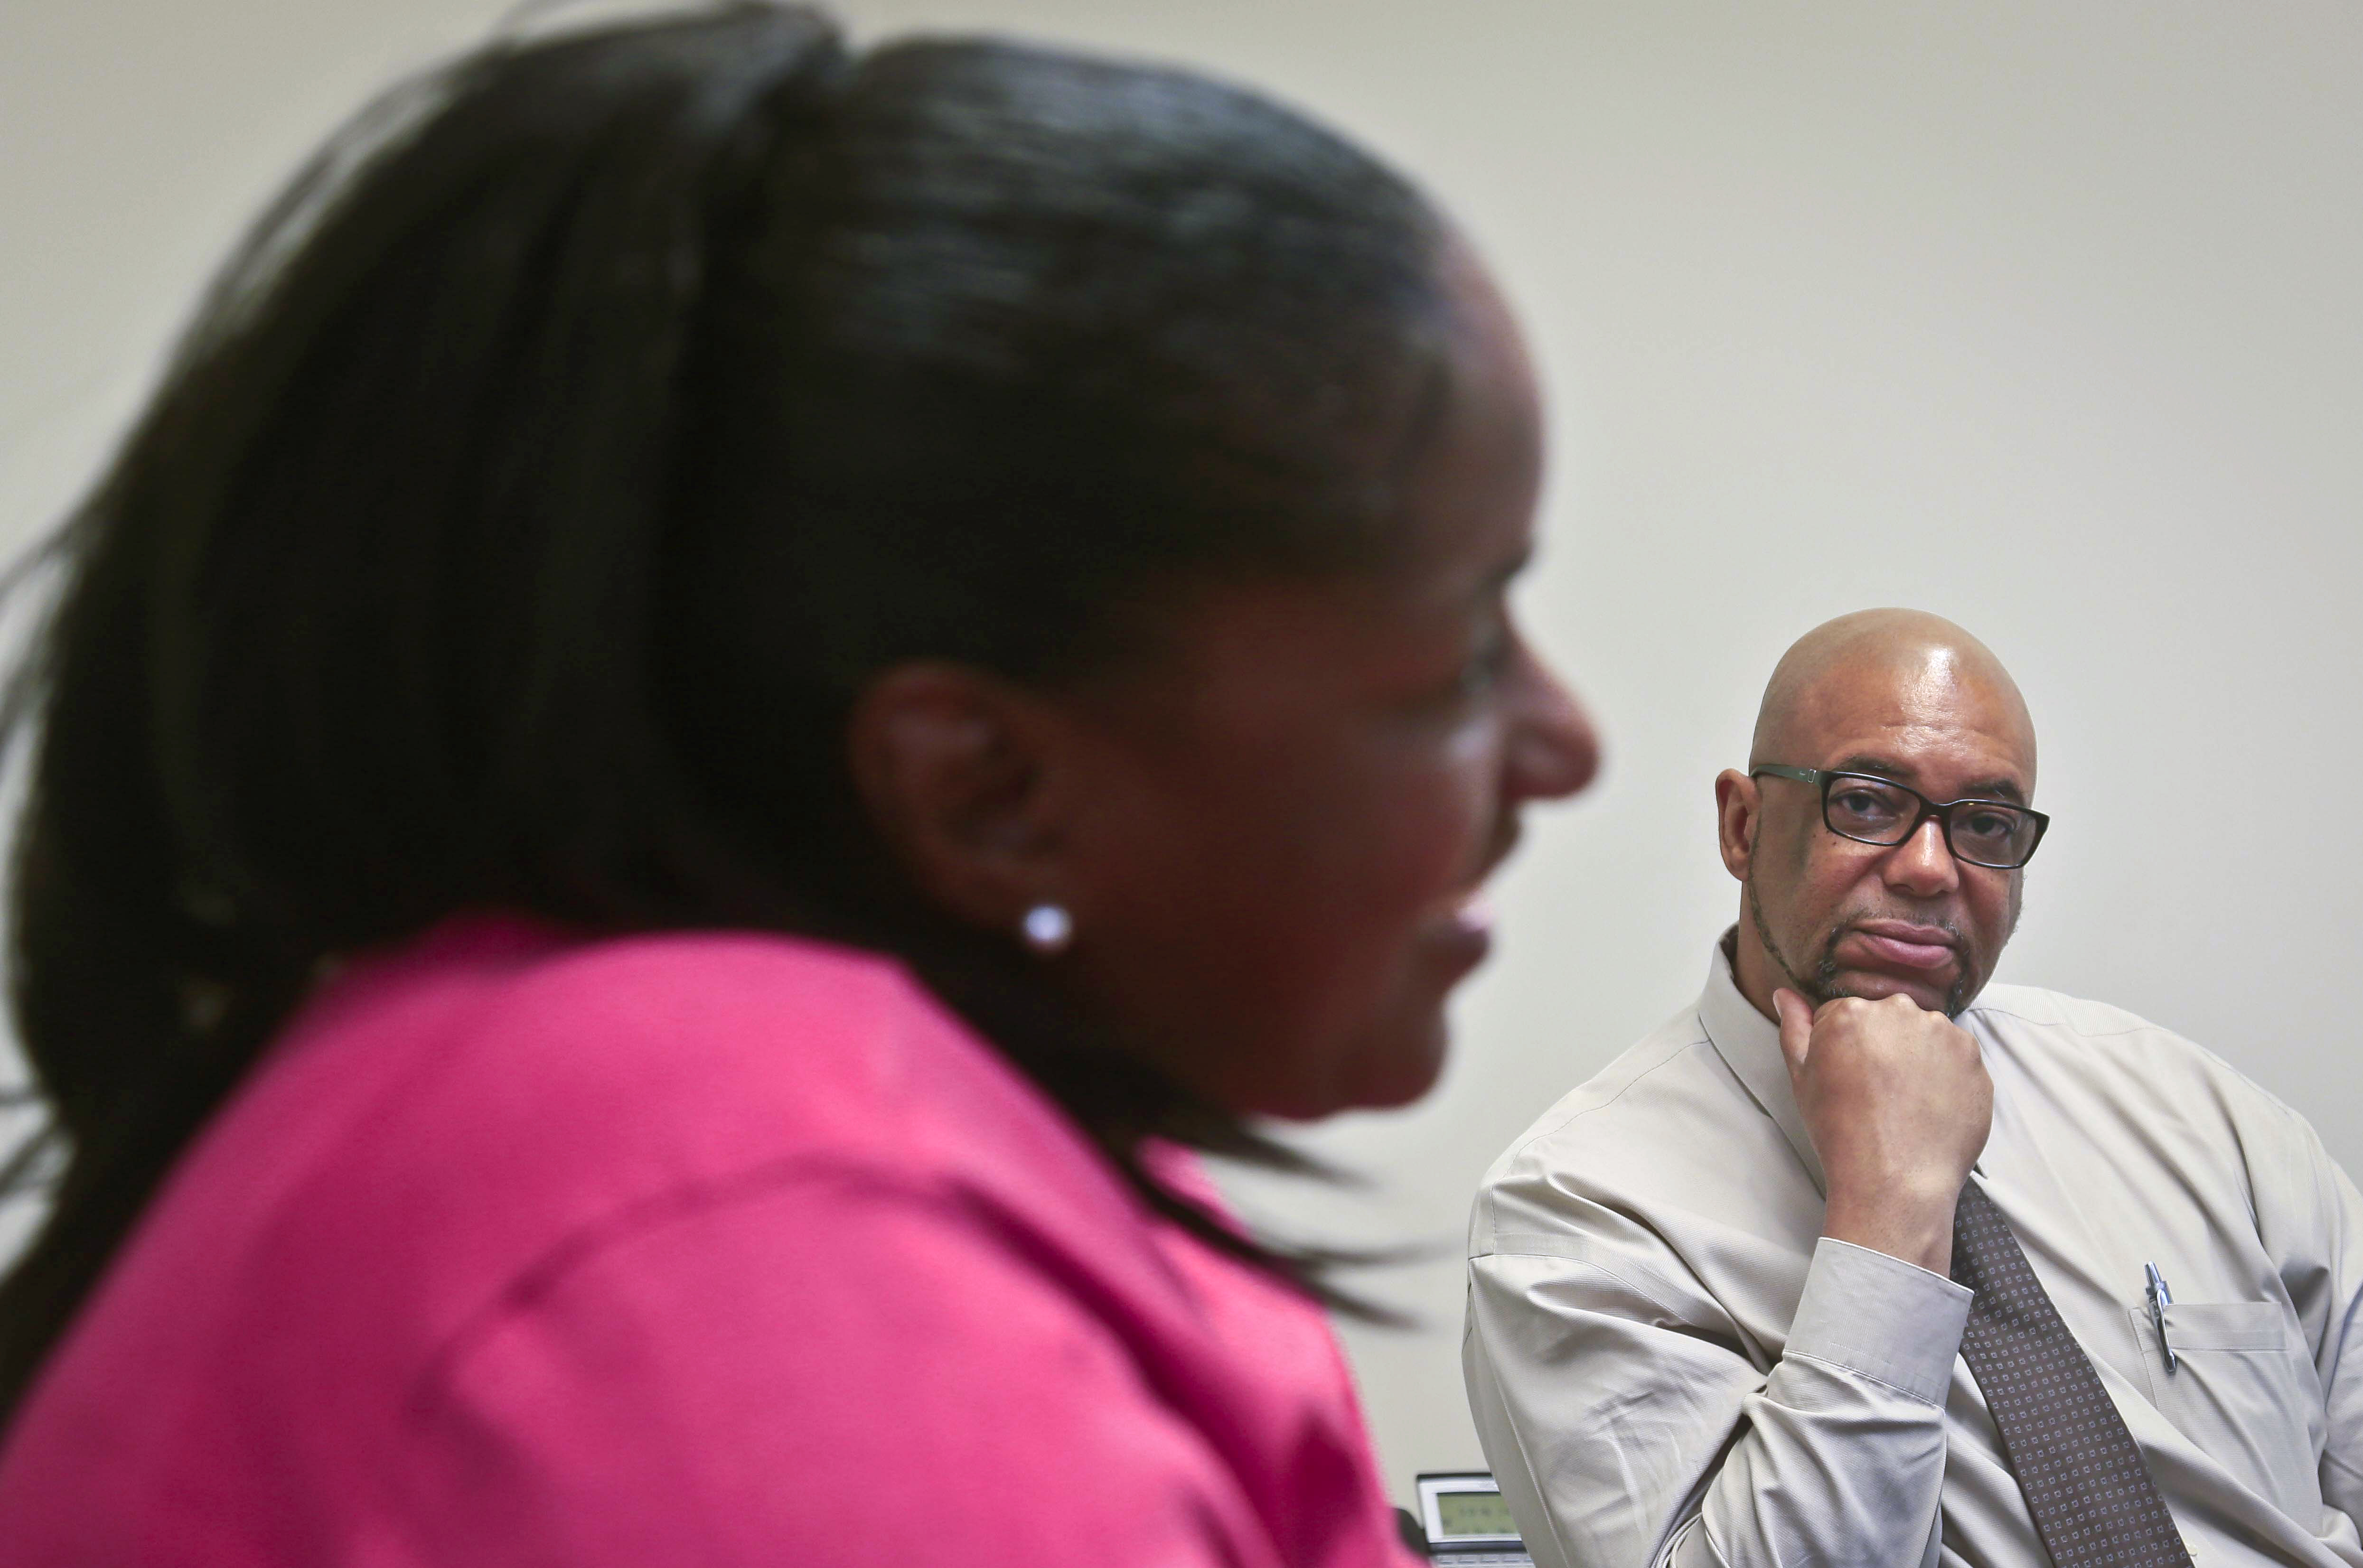 In this May 29, 2014 photo, Stan Richards, right, an executive with the Fortune Society, listens as Melissa Carter, left, speaks during an interview in New York.